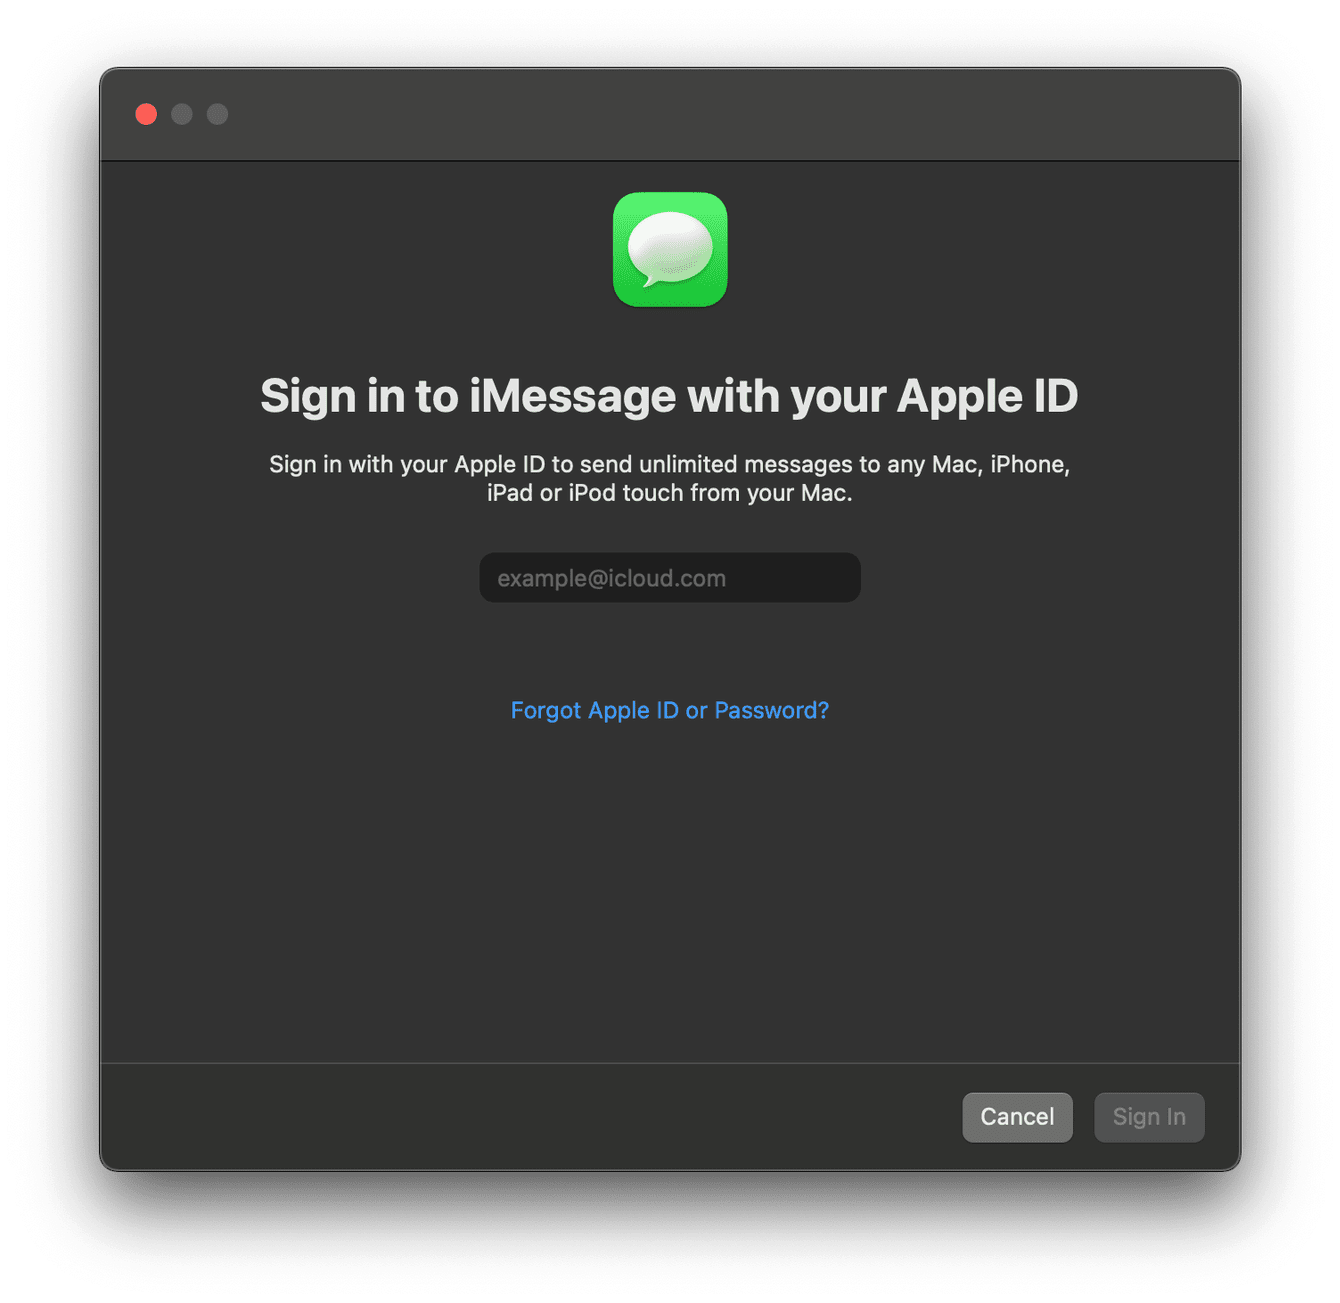 How to sign up for iMessage